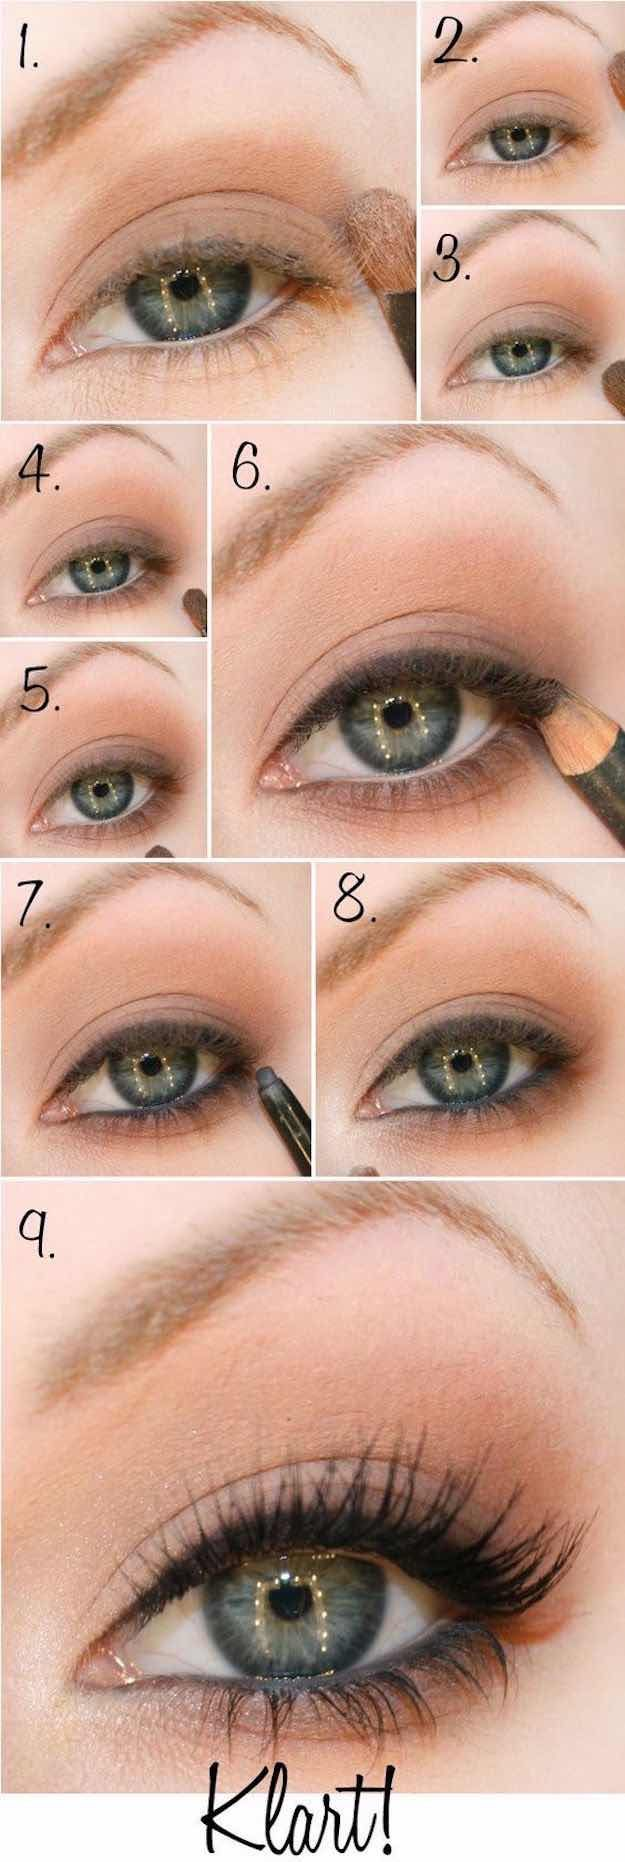 50 Makeup Tutorials For Green Eyes Amazing Eye Work Prom Weddings Every Day Easy Step By Diy Guide